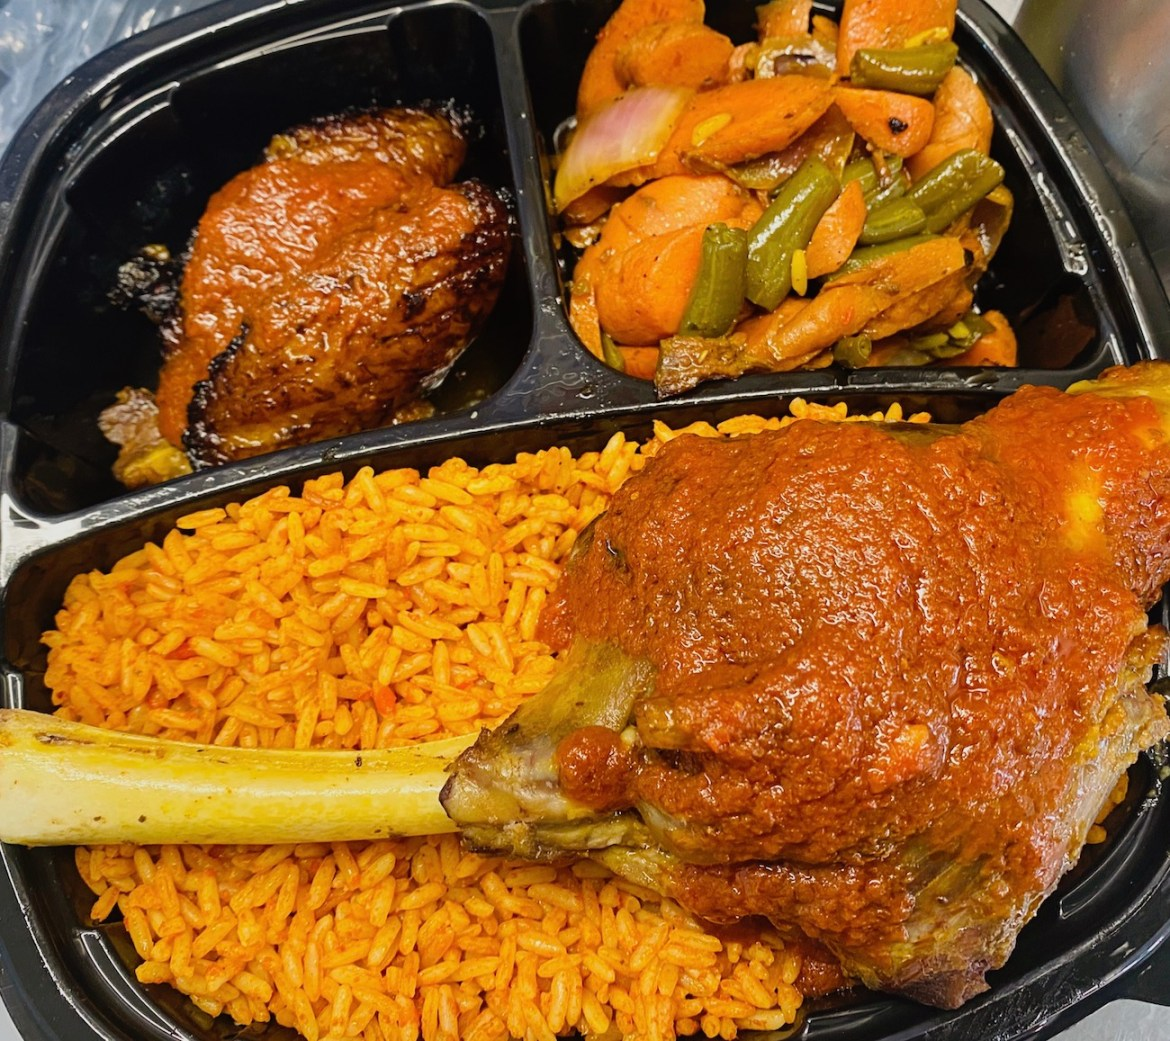 Jollof rice and stewed goat shank from Detroit food truck Fork in Nigeria